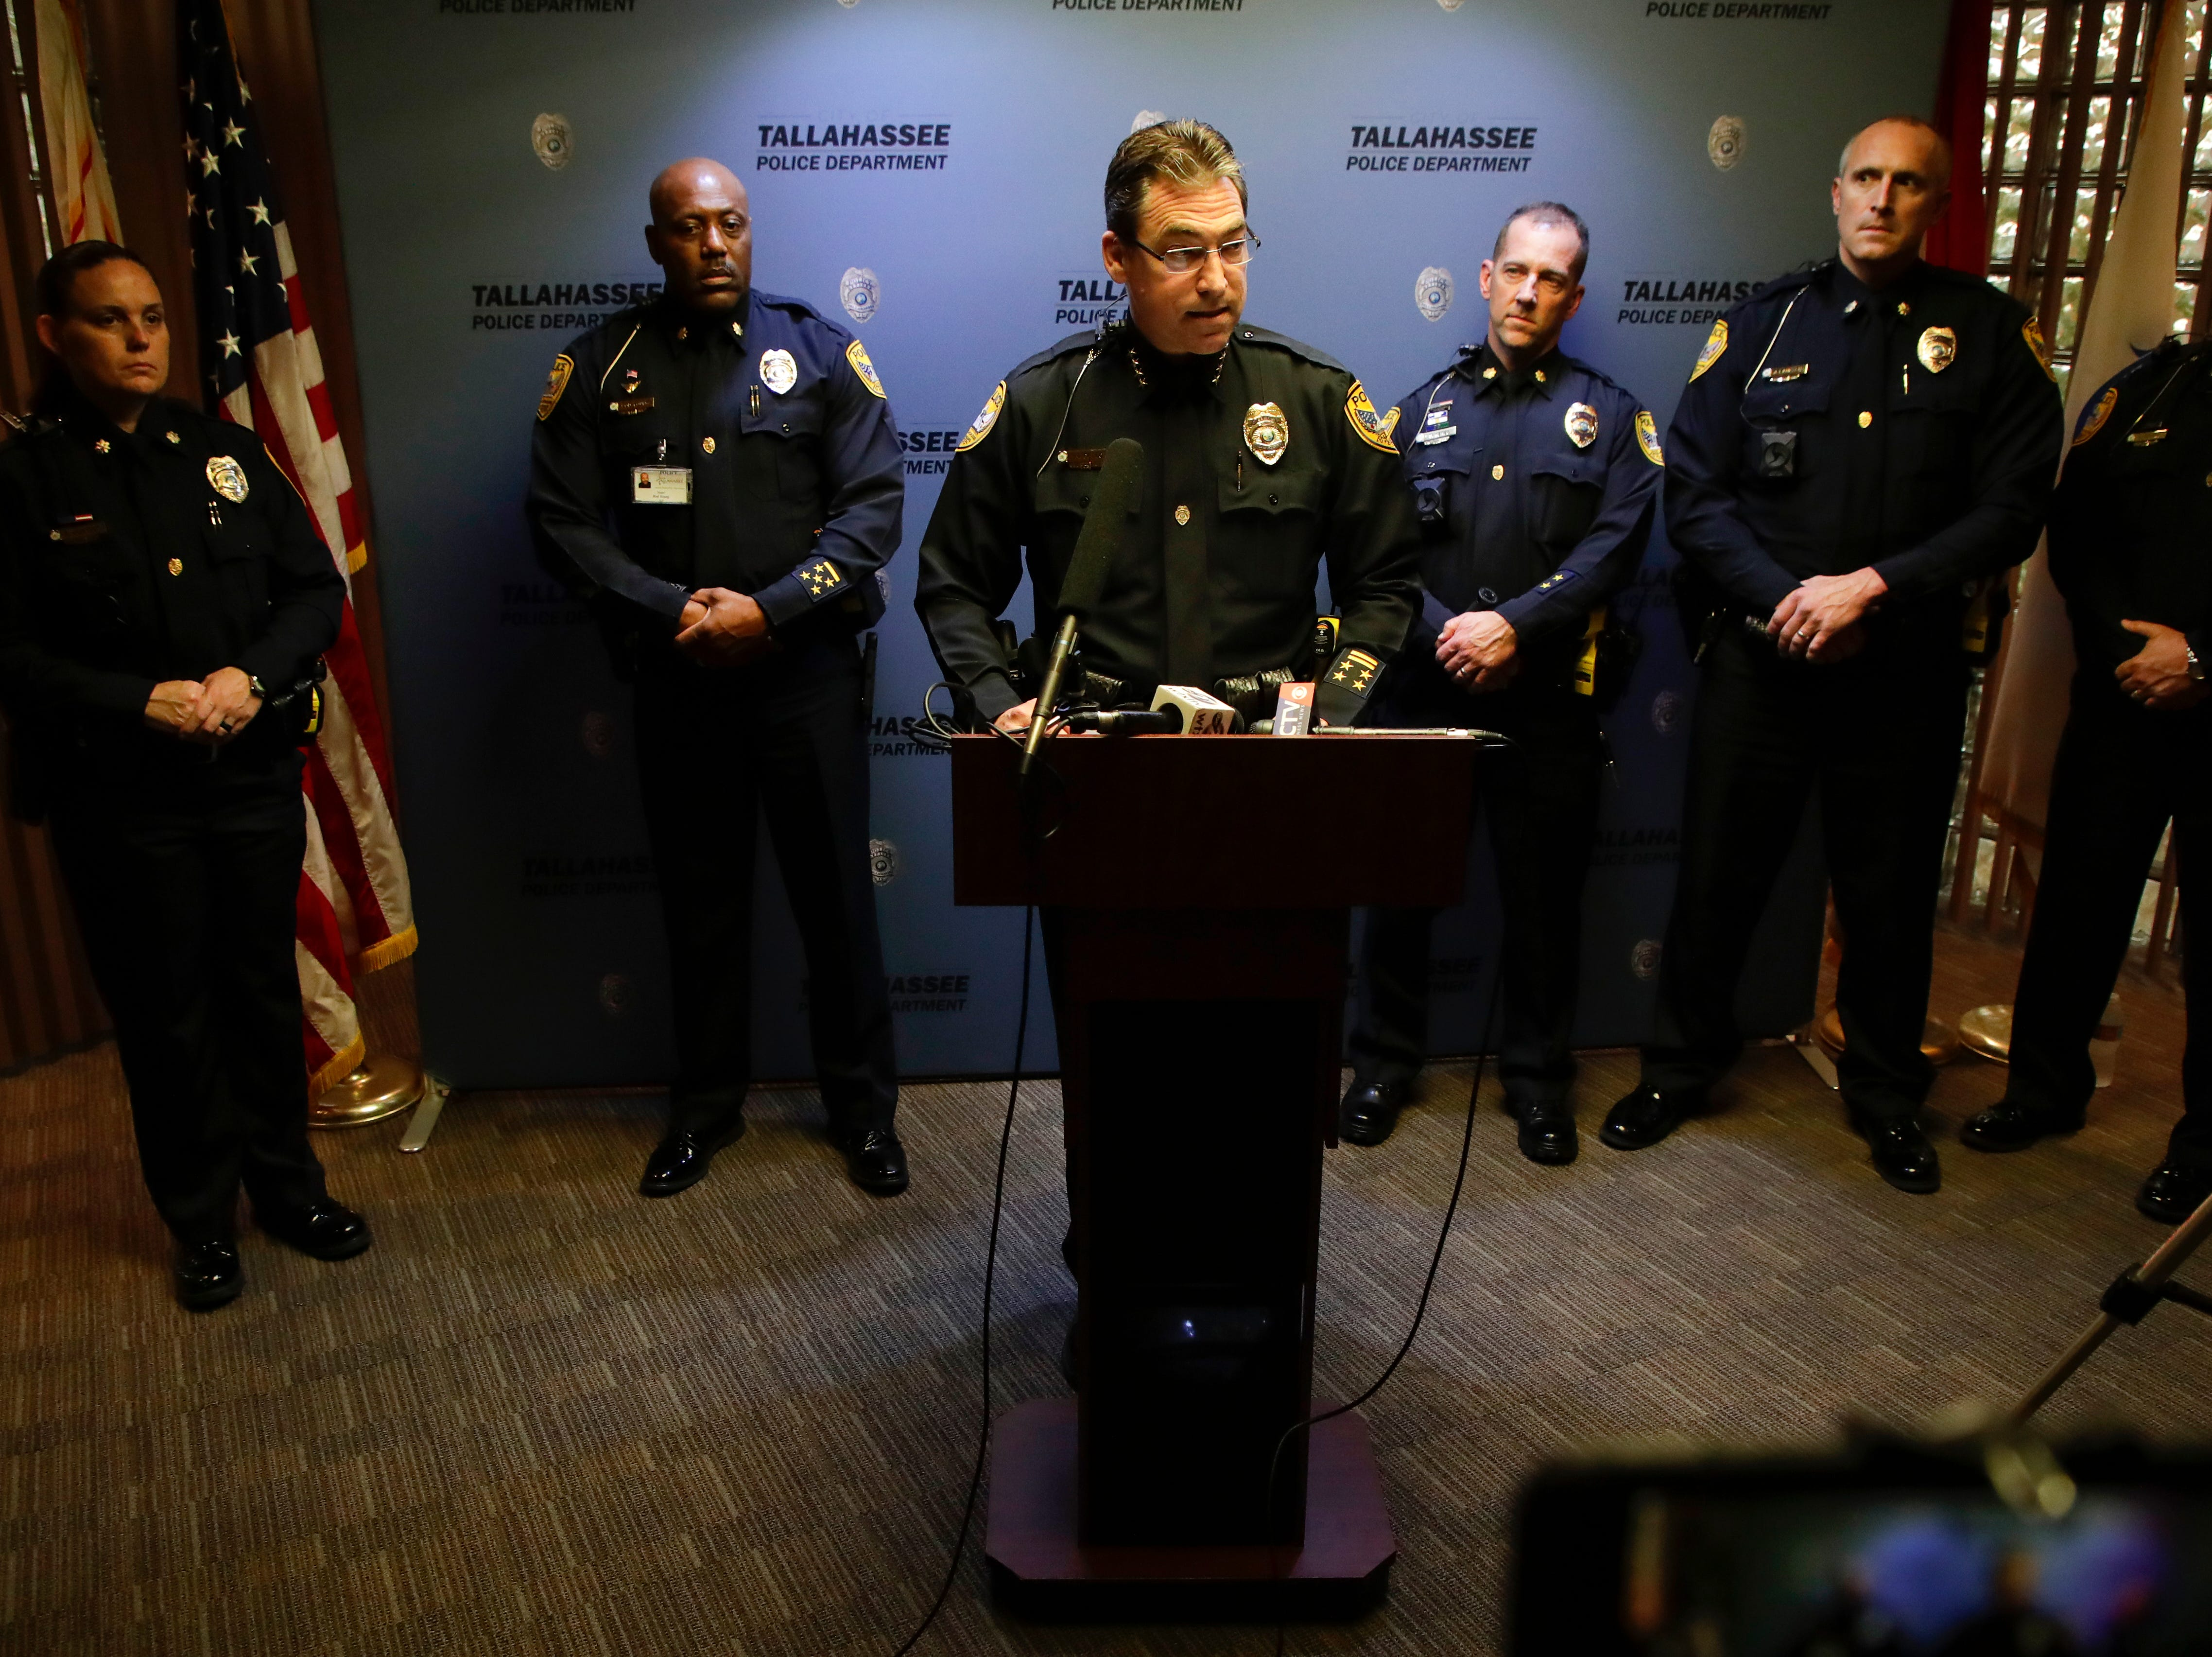 Tallahassee Police Chief Michael DeLeo holds a press conference as the department releases their final report on the Friday, Nov. 2, 2018 Tallahassee Hot Yoga shooting at the Tallahassee Police Department Tuesday, Feb. 12, 2019.